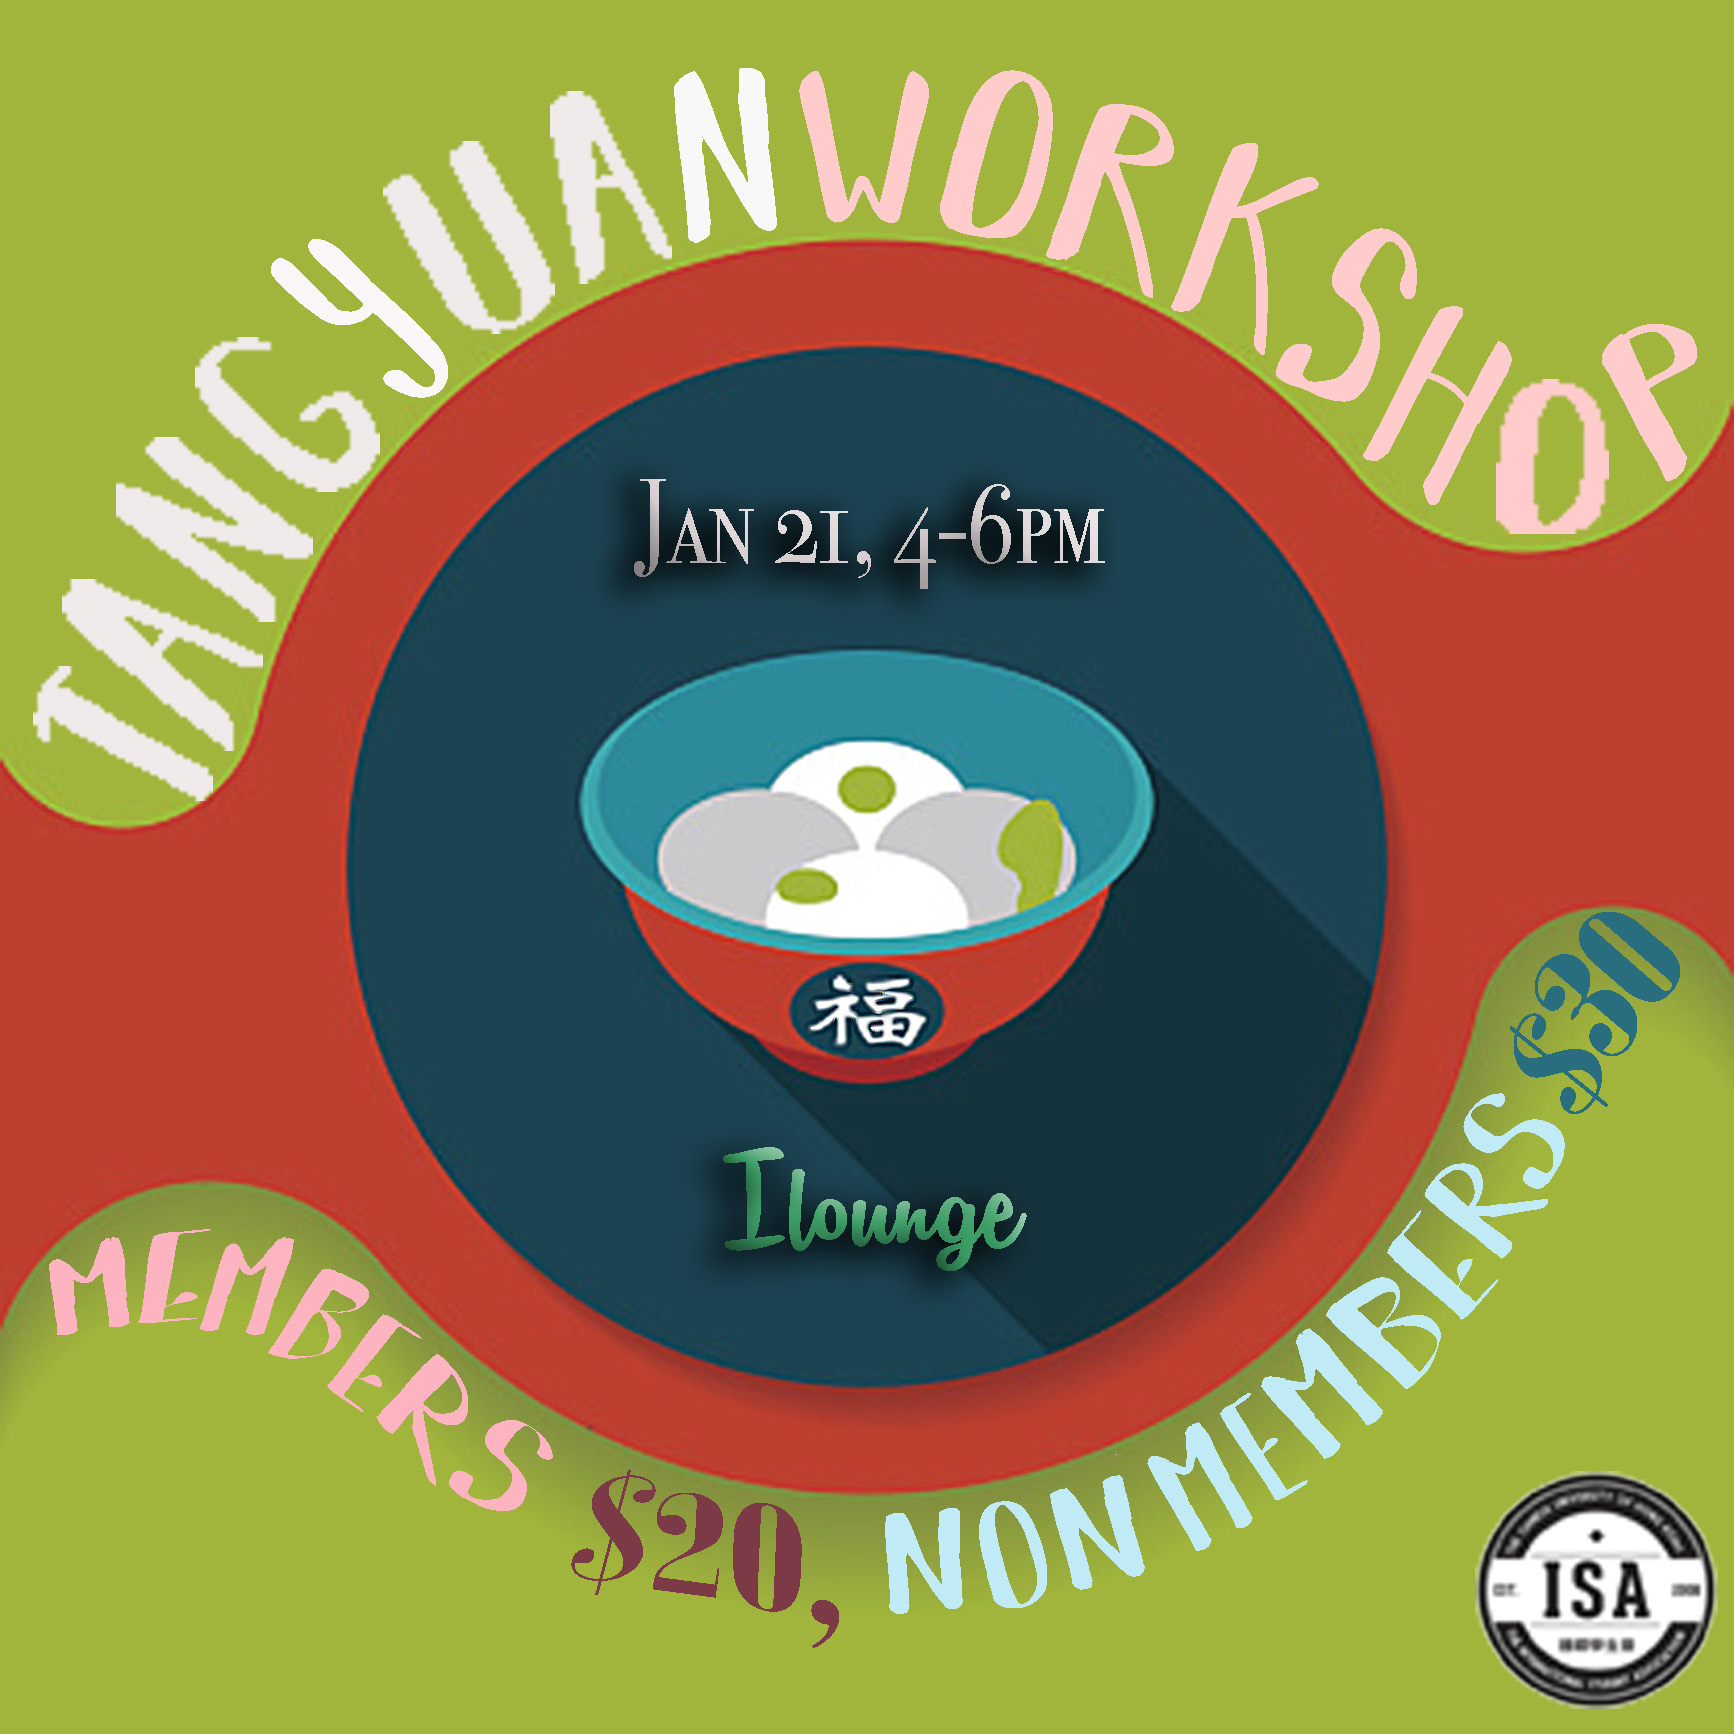 Hey guys! The 8th Executive Committee would cordially like to present to you our first event of 2017. With Chinese New Year quickly approaching, we bring you an opportunity to celebrate the upcoming holidays, through a cultural food-making workshop. Learn how to make traditional Chinese Tangyuan, through the first ever Tangyuan Workshop brought to you by the ISA. Eat, share, and enjoy the early festive atmosphere! We hope you can join us!  facebook page:  https://www.facebook.com/events/150819305412587/